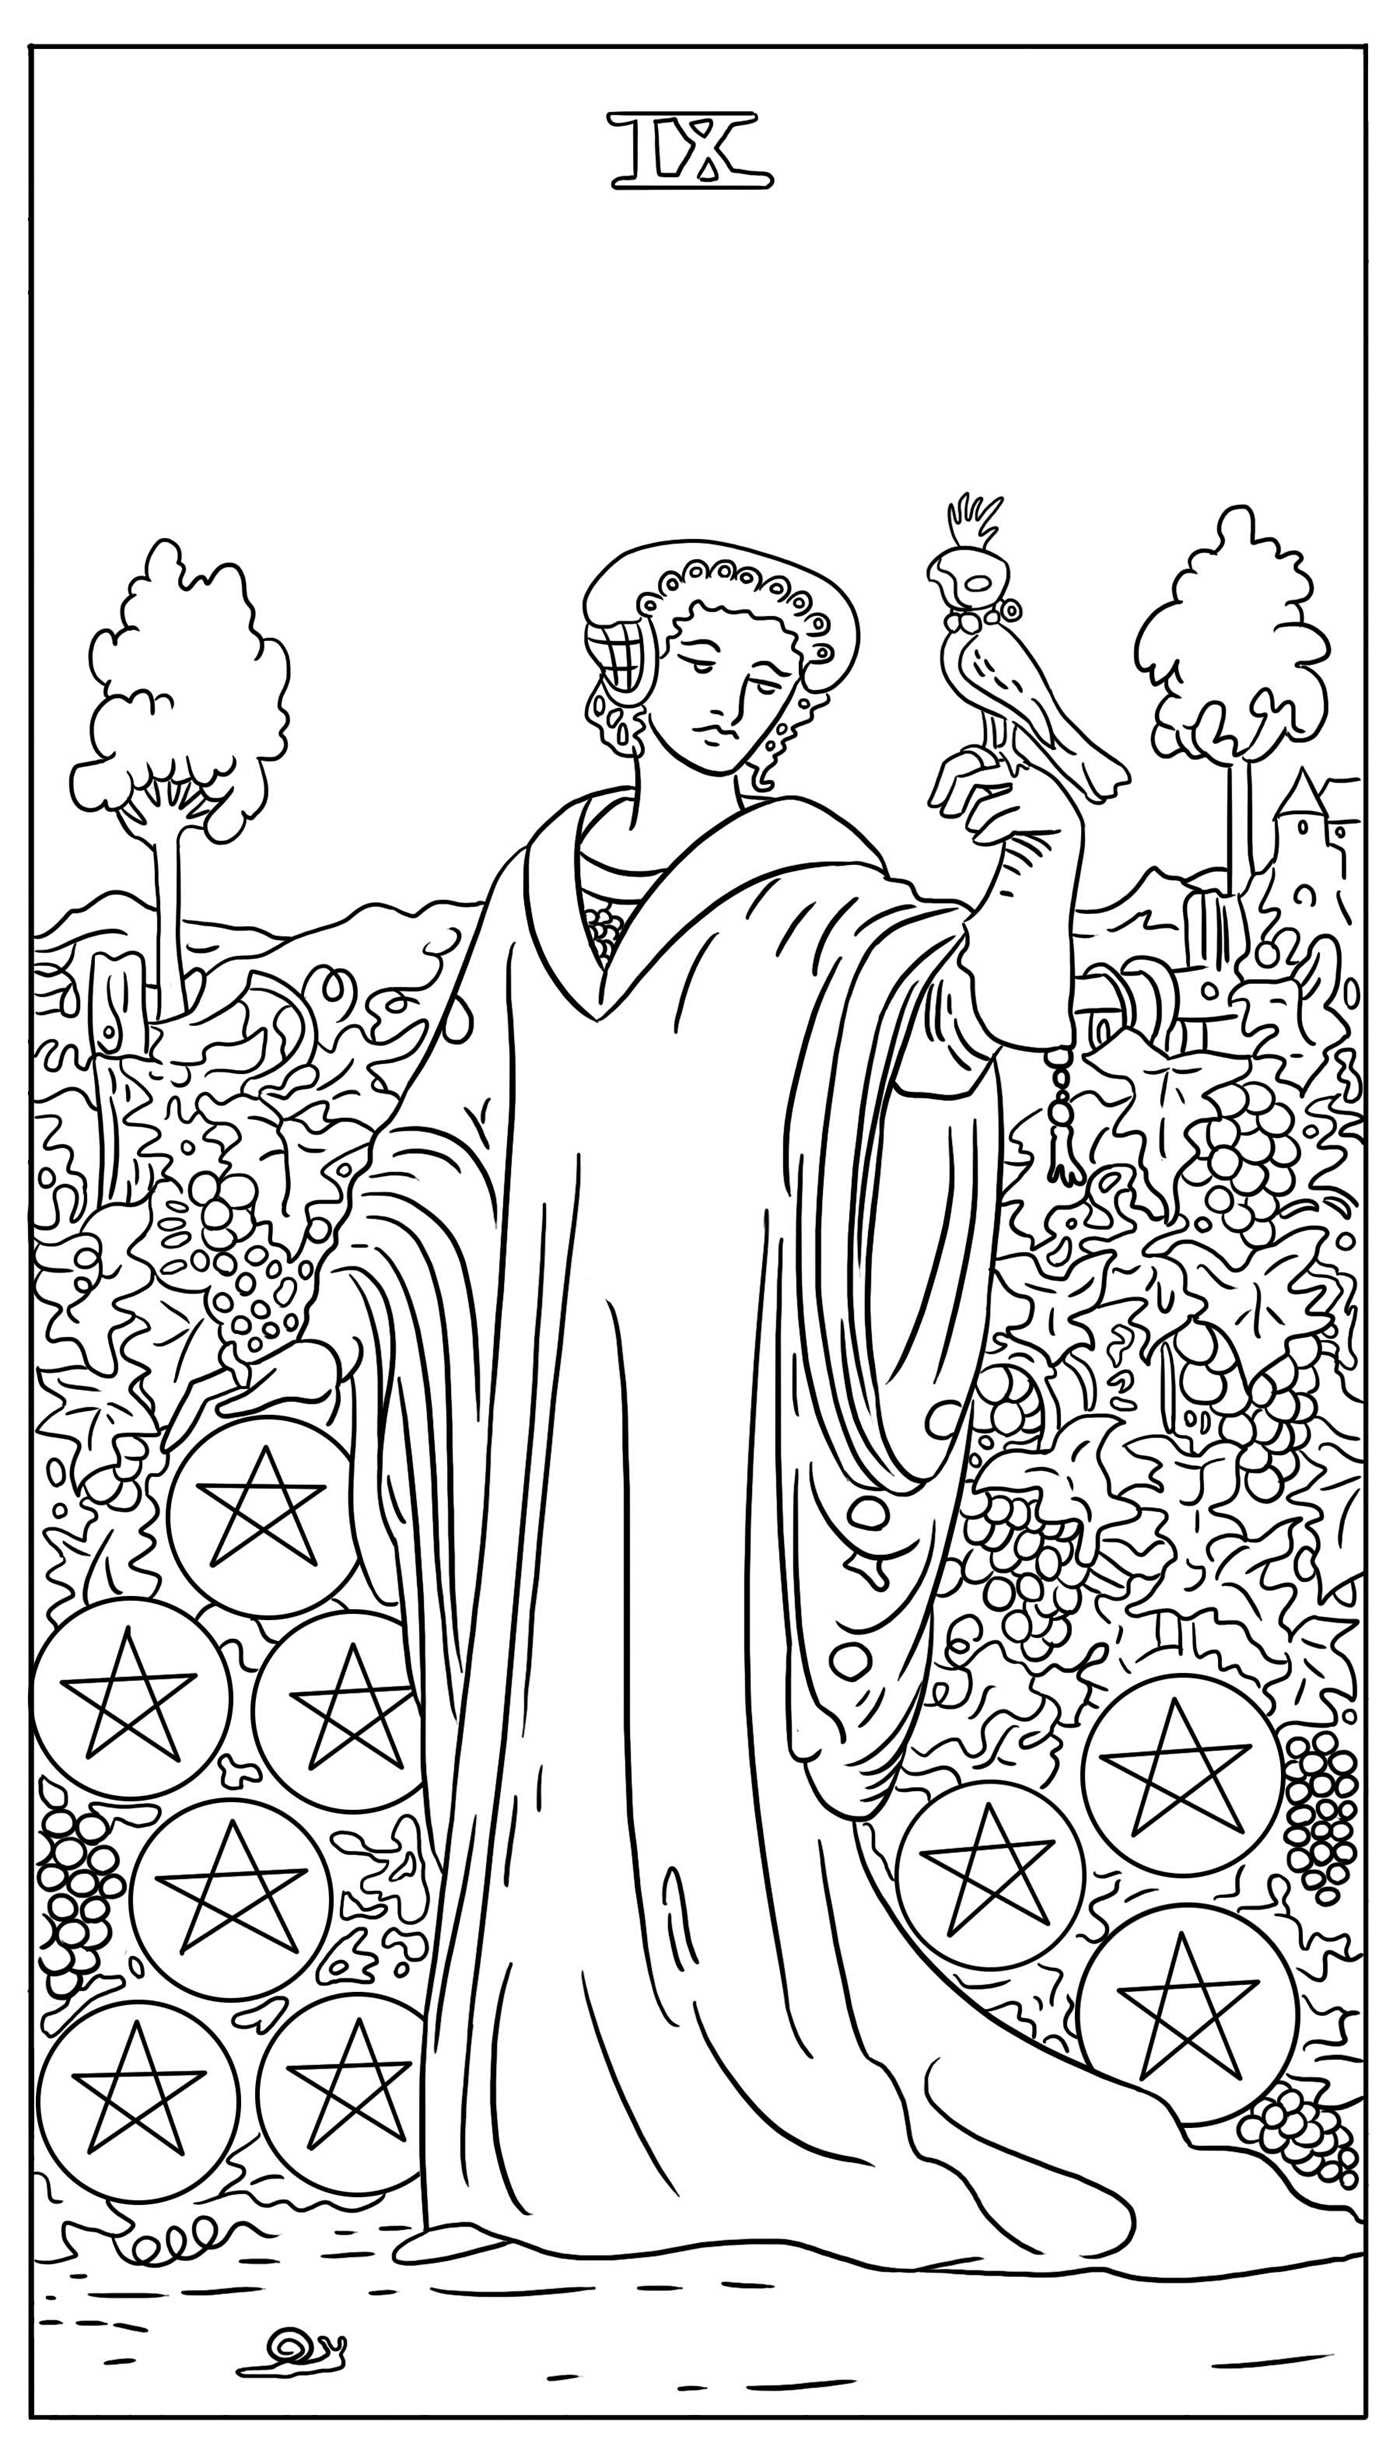 The tarot card adult coloring book 9781682612644.in06